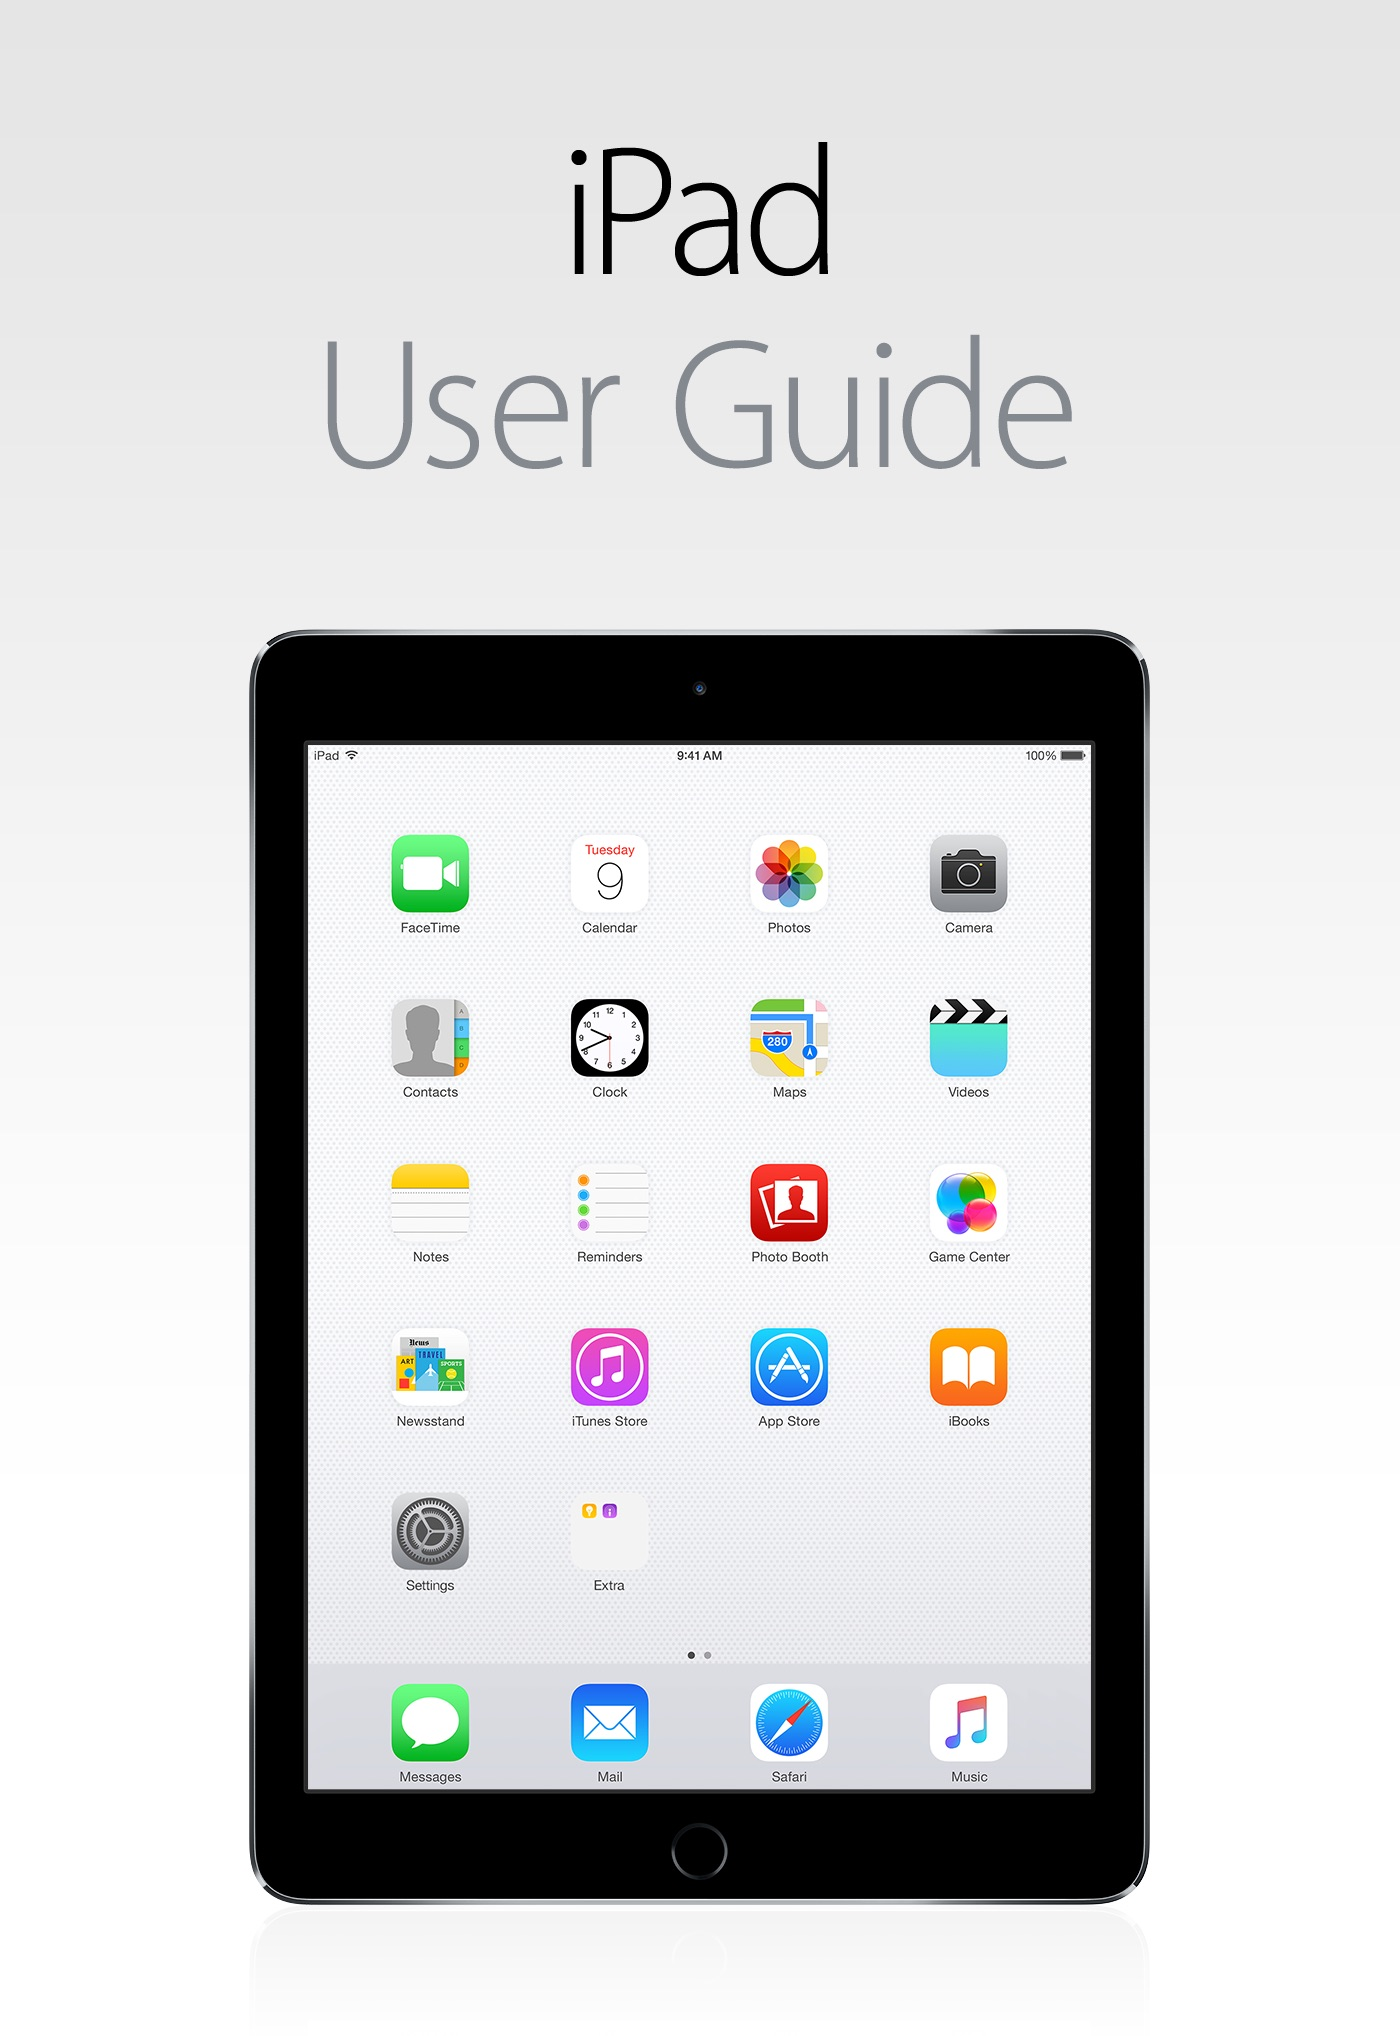 Iphone User Guide For Ios 8 4 By Apple Inc On Ibooks Manual Guide